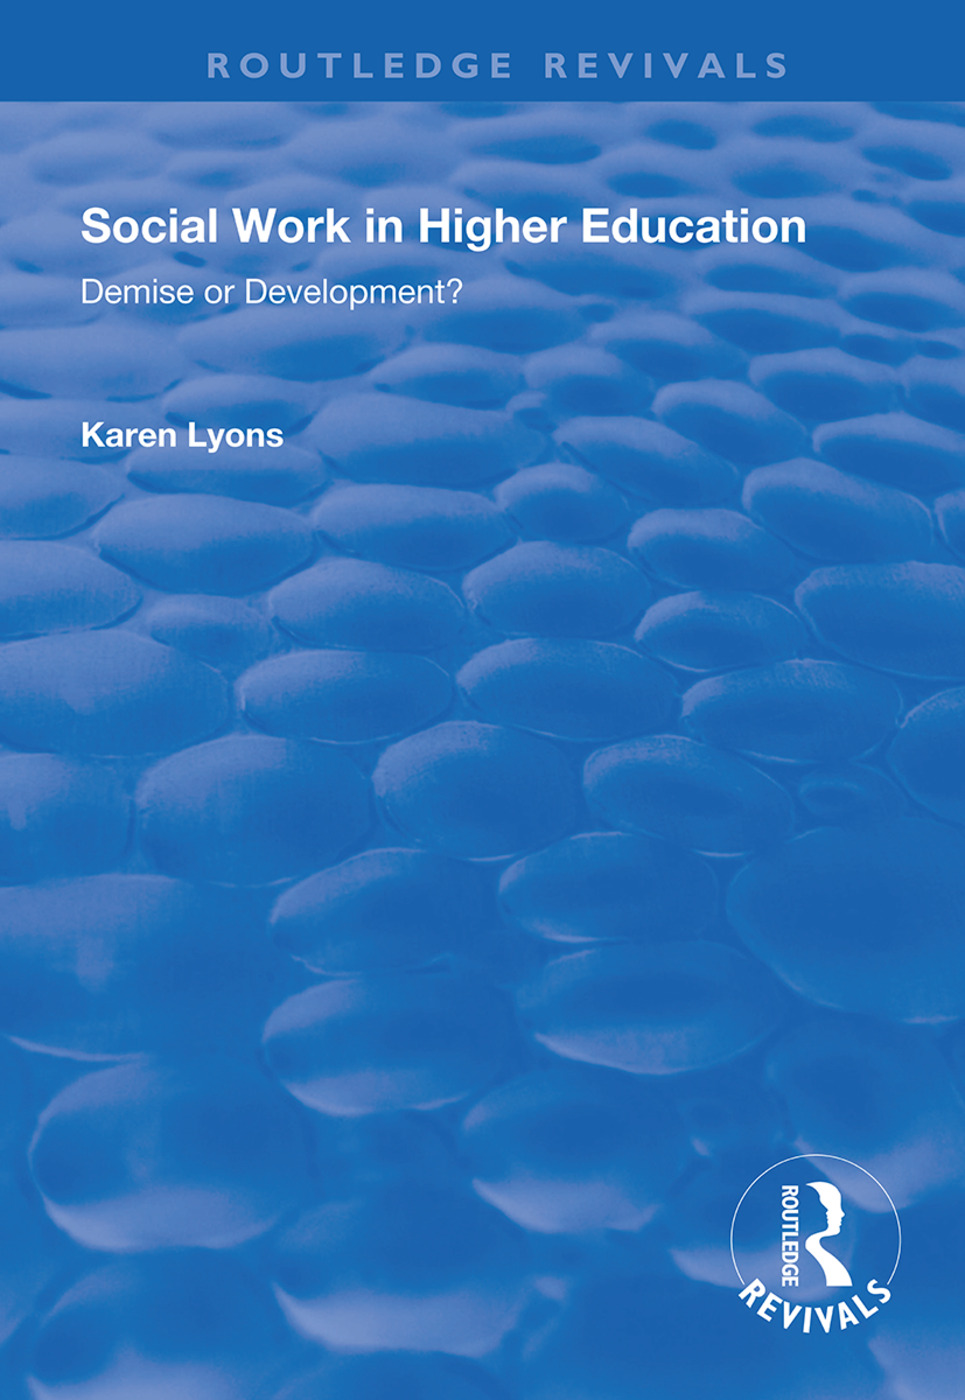 Social Work in Higher Education